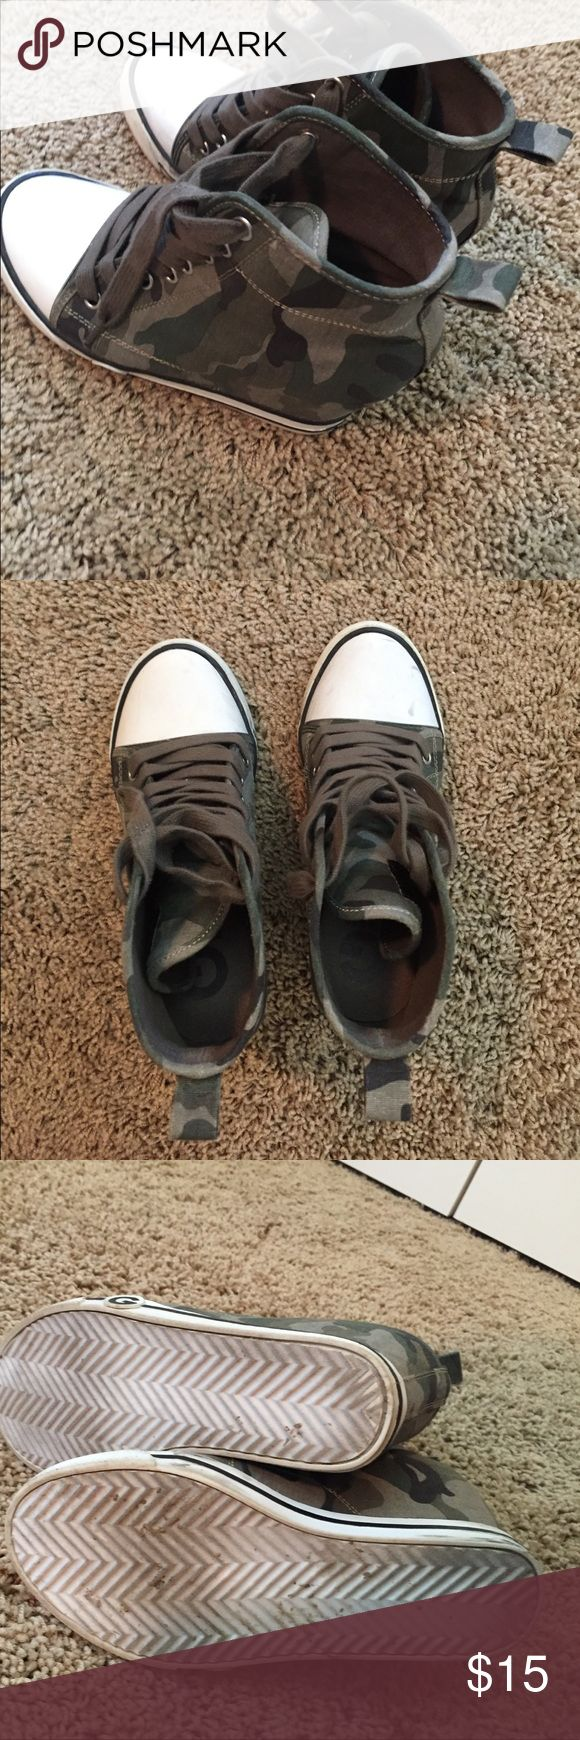 Guess size 6.5 wedge tennis shoe Gently used. Worn multiple times. Only a few black marks (see pics). Camouflage print wedge tennis shoe. Super comfortable. Guess Shoes Wedges